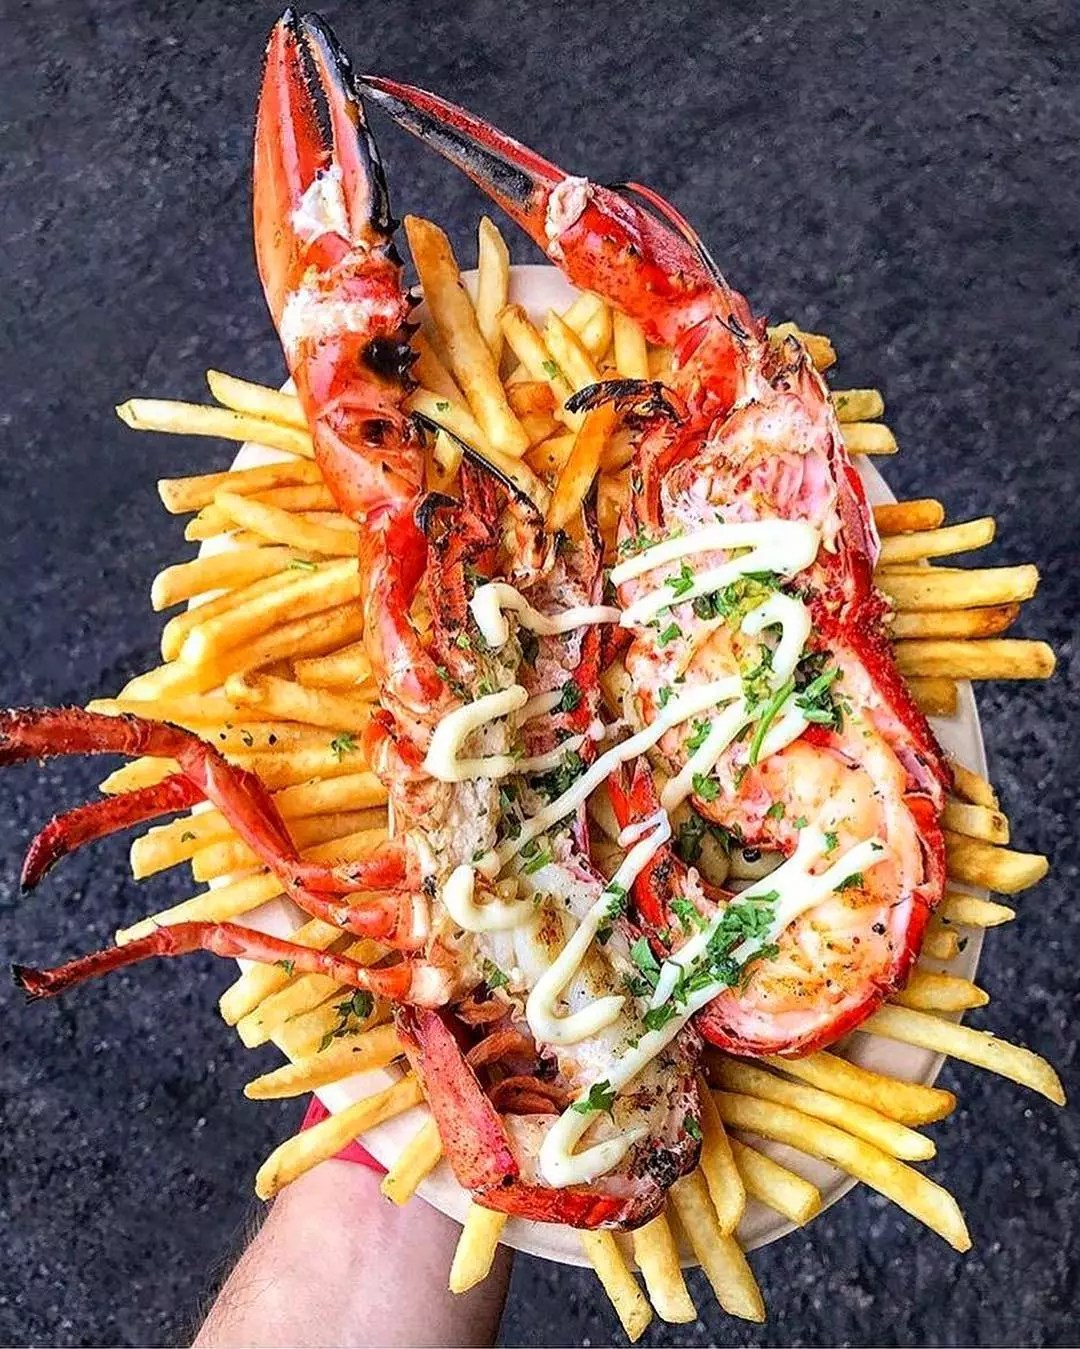 Large plate of fries topped with lobster tails Photo by Instagram user @smorgasburg